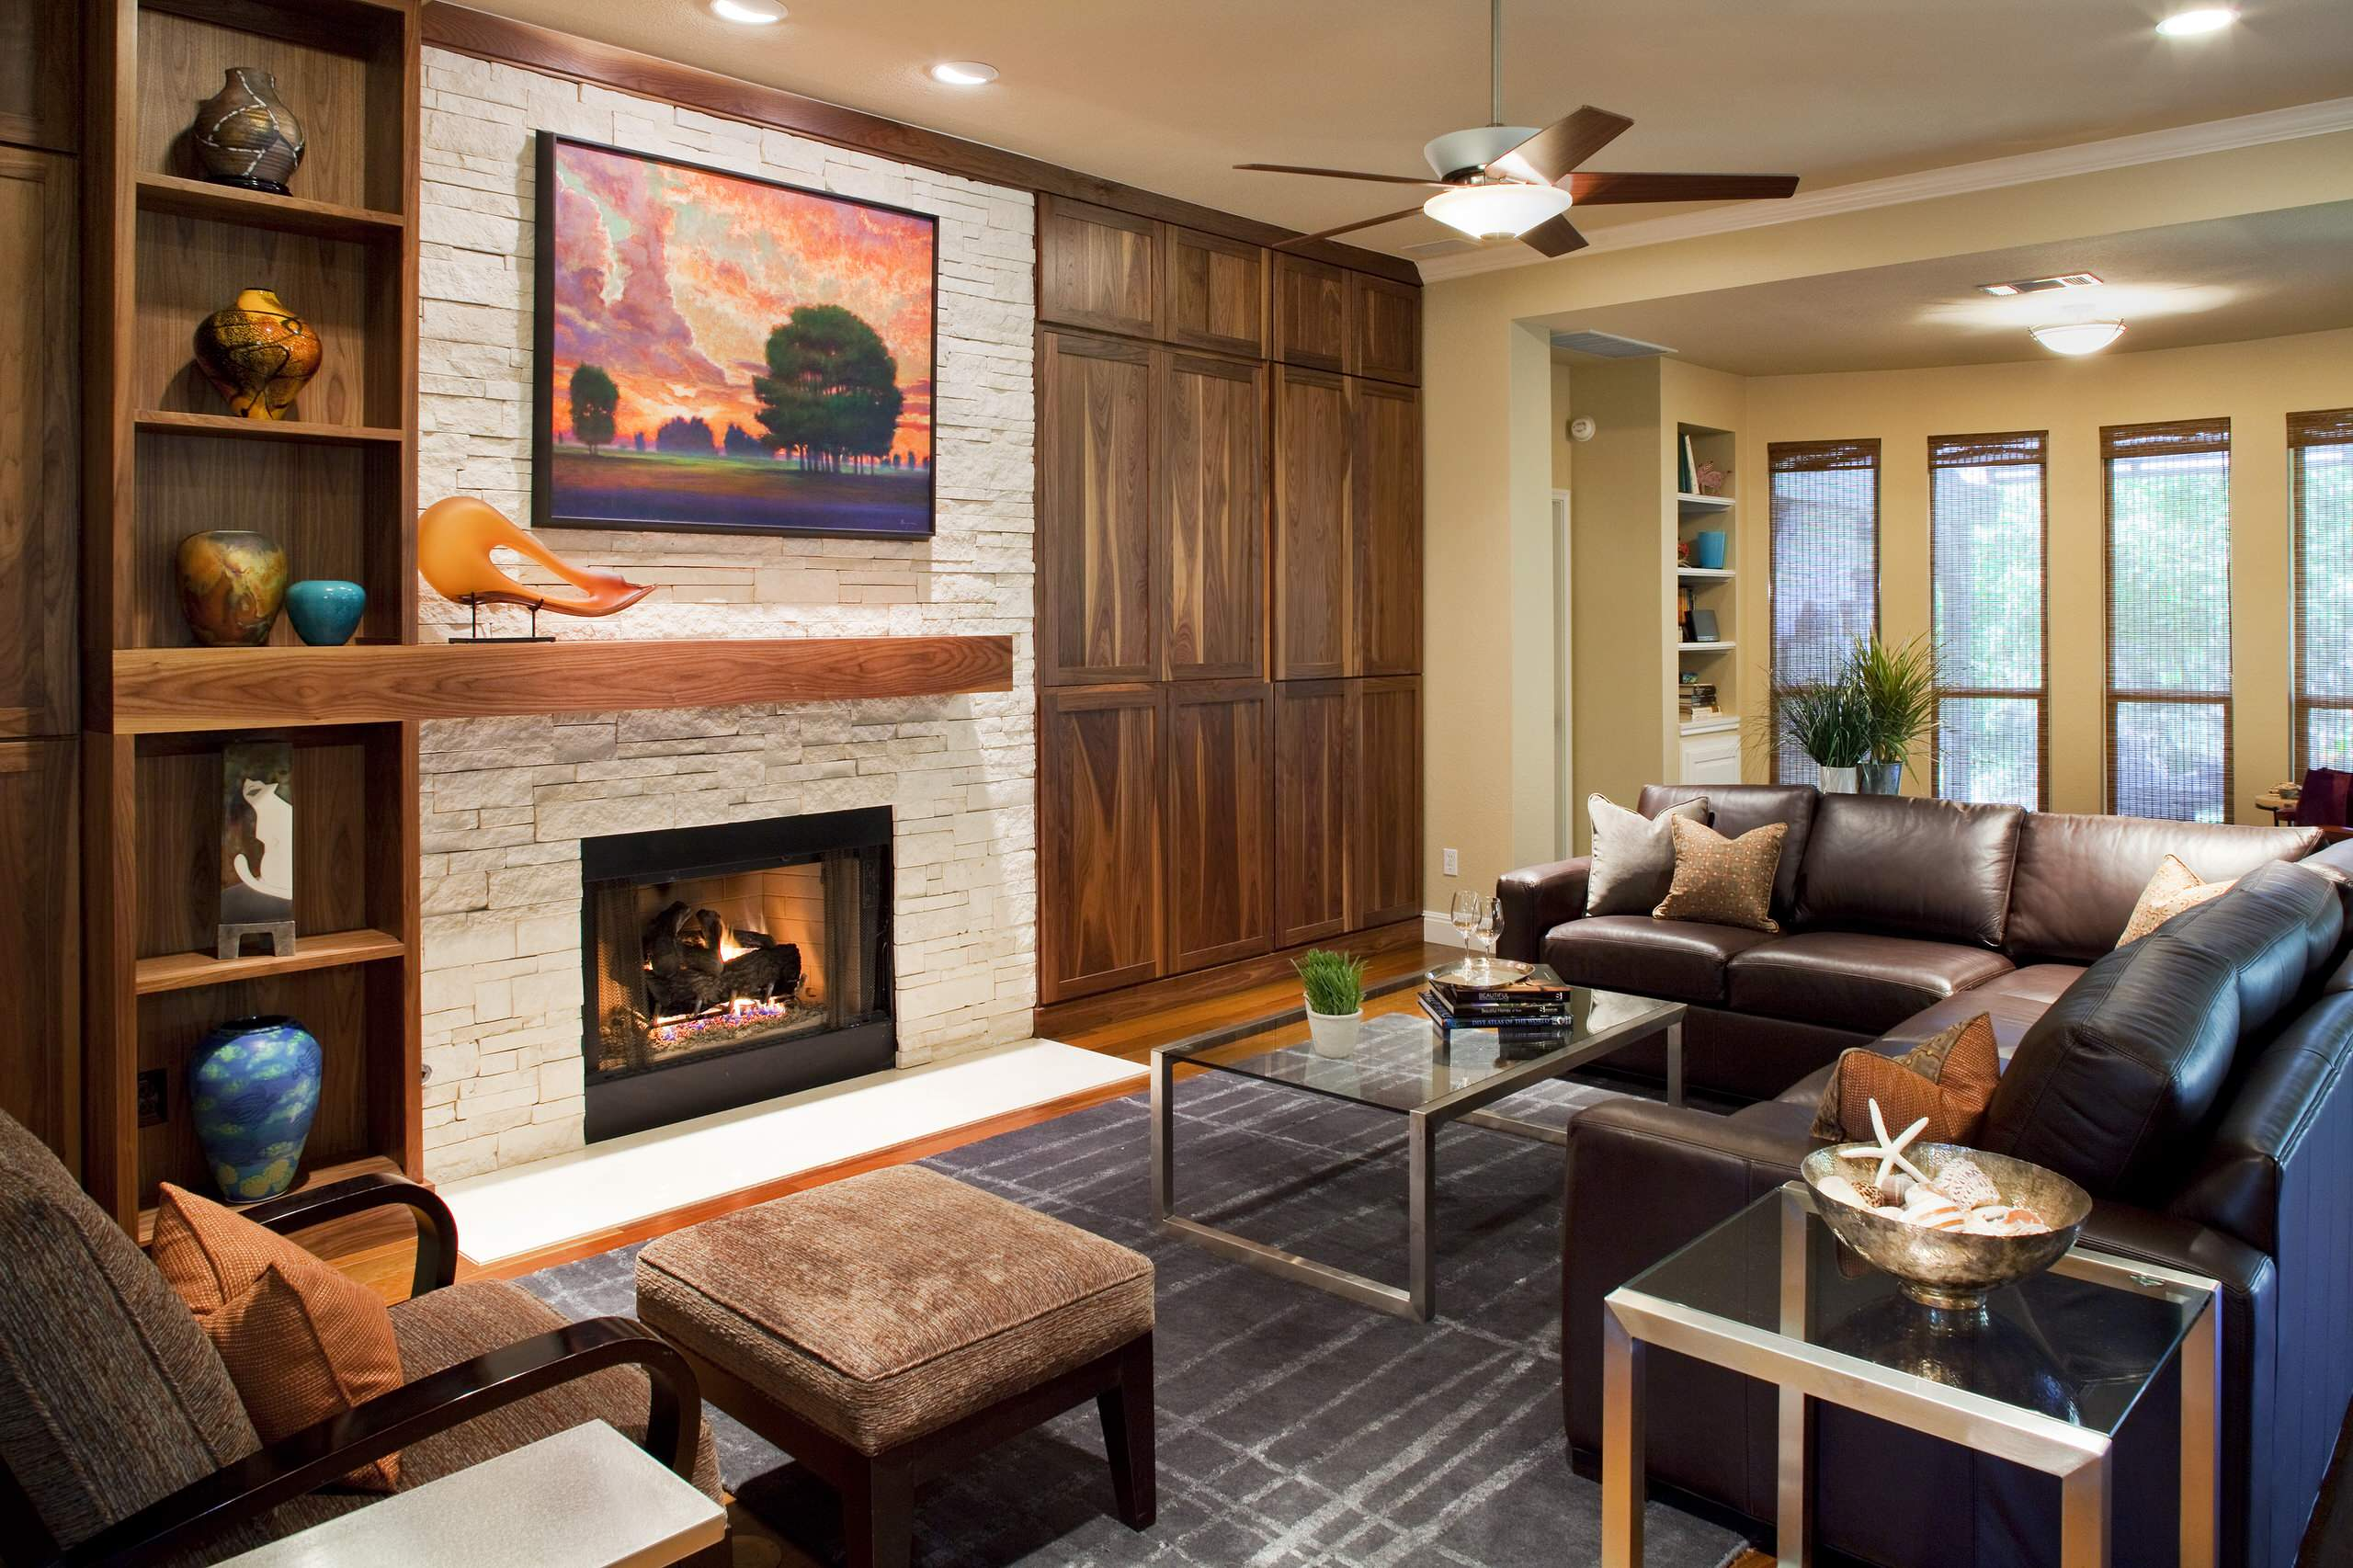 Awesome Mantel Design Ideas for Fireplace In Your Home: Area Rug In Contemporary Living Room Plus Built In Shelves And Built In Storage Also Ceiling Fan With Ceiling Lighting Plus Contemporary Fireplace And Mantel Also Corner Sofa